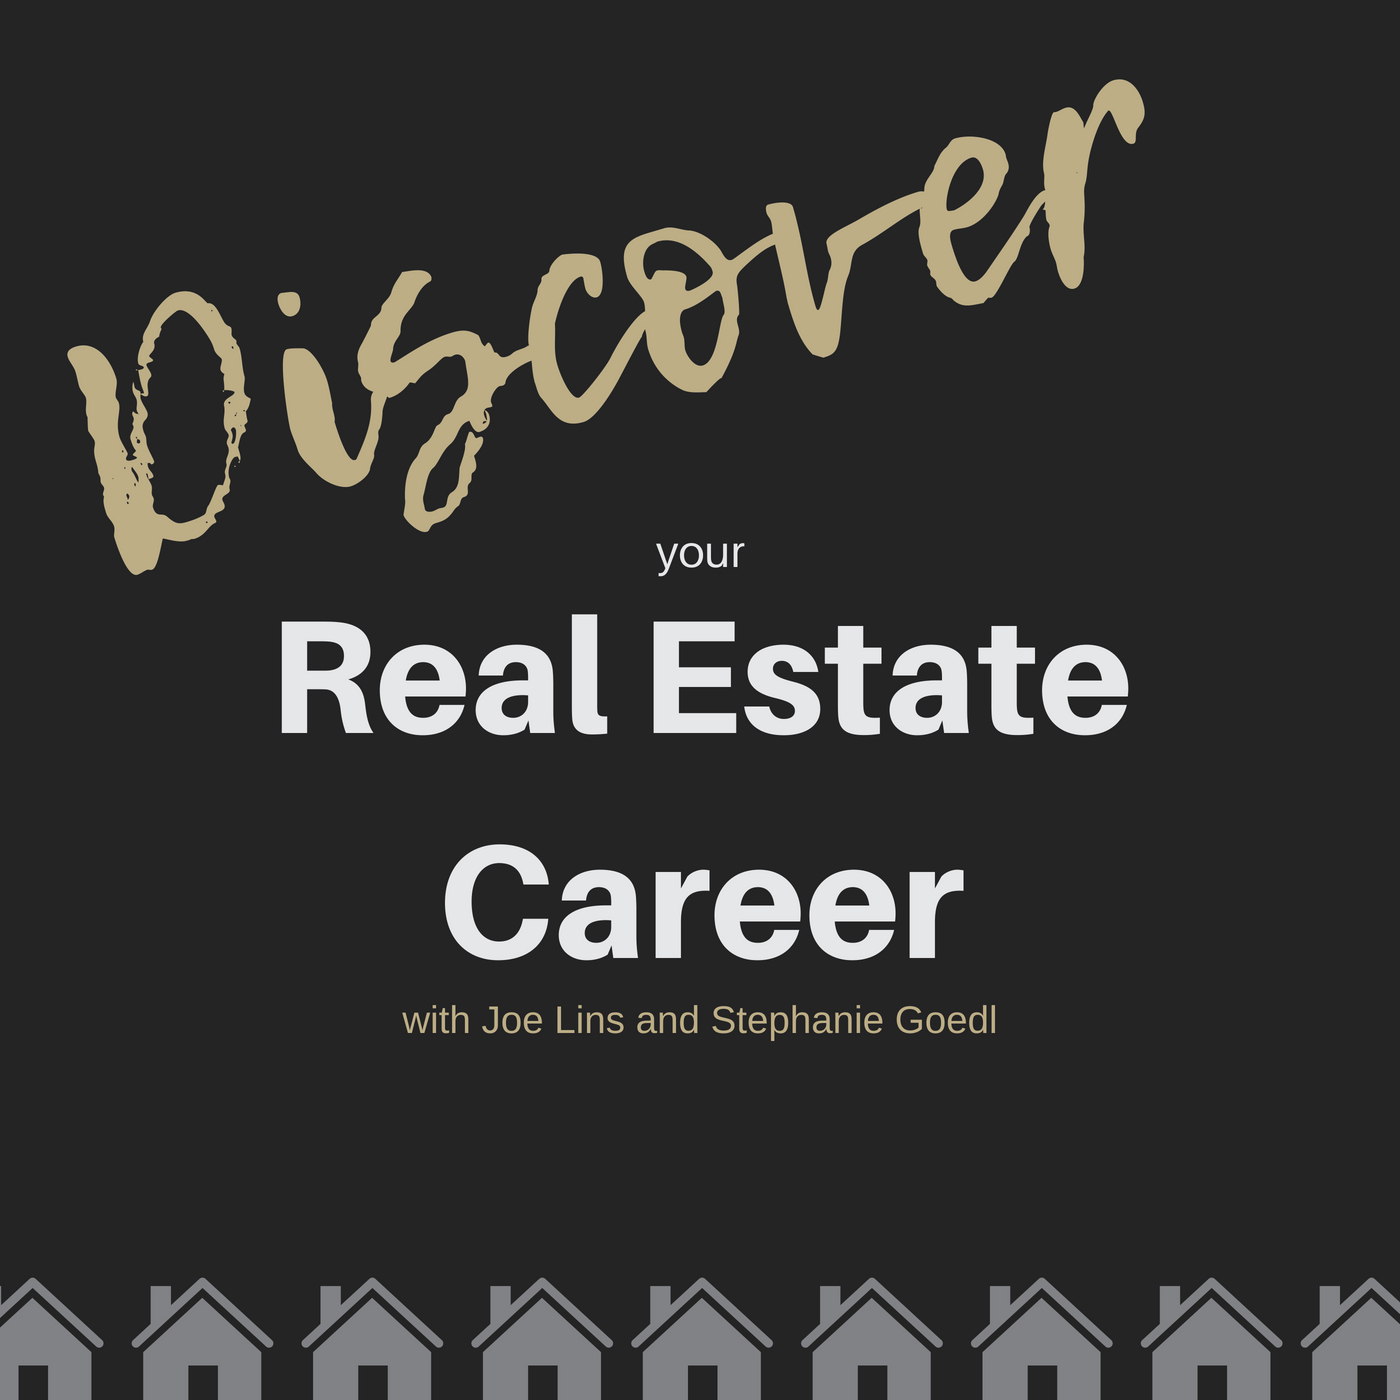 Ep. 1  |  Welcome to Discover Your Real Estate Career